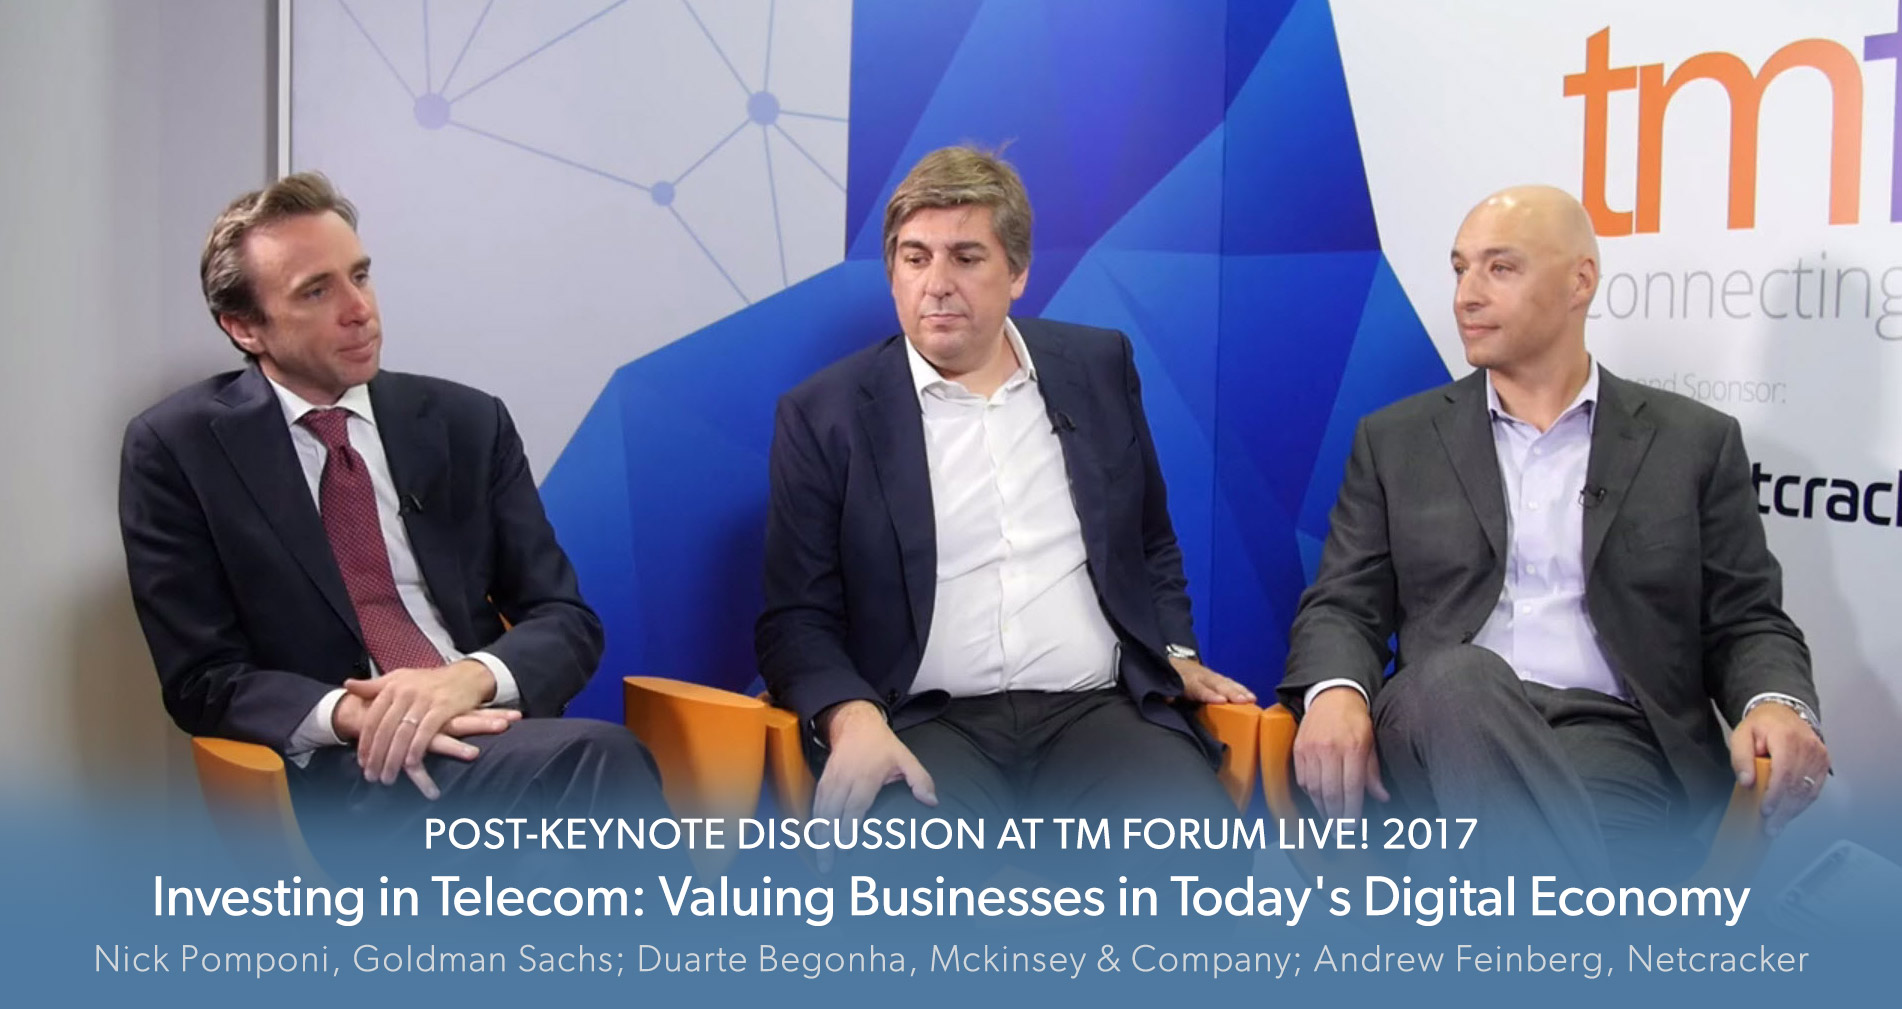 investing-in-telecom-valuing-businesses-in-todays-digital-economy